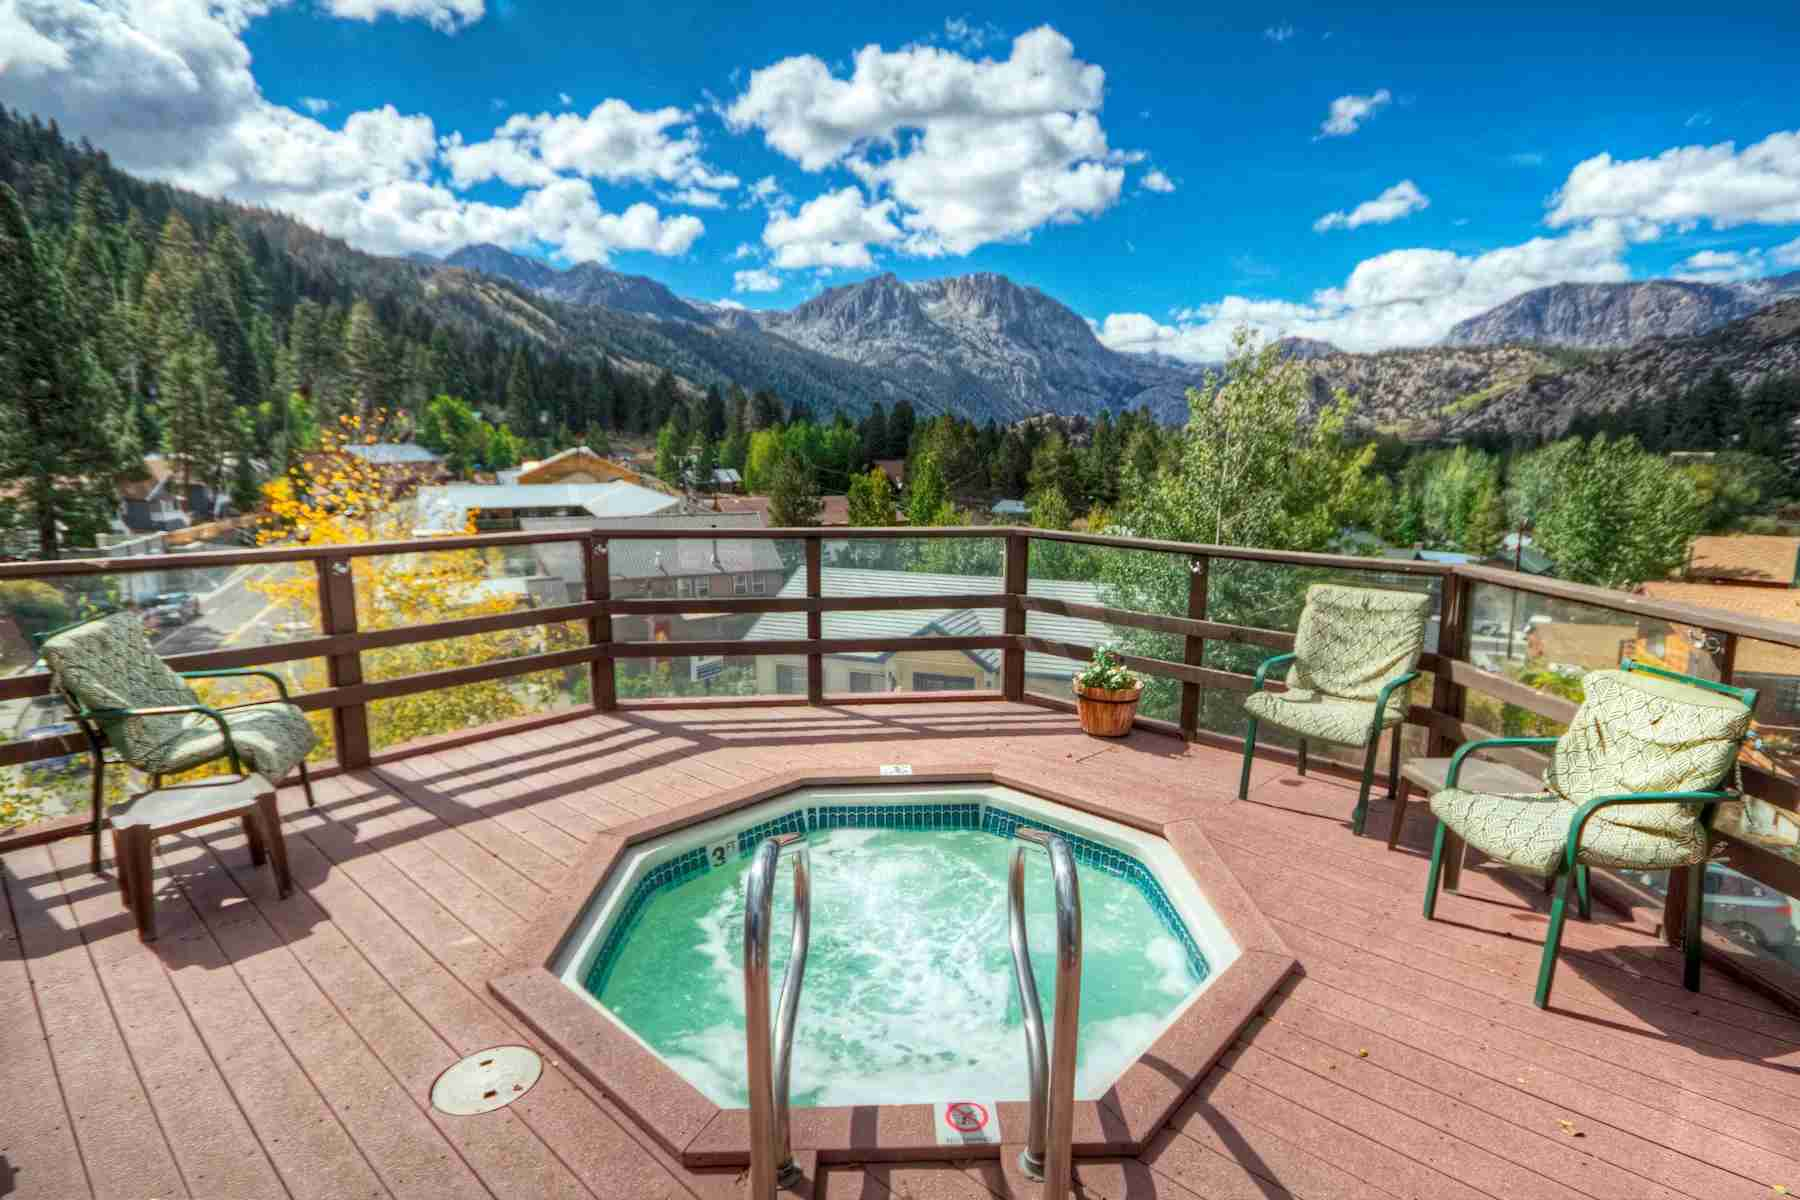 The outdoor hot tub at the Heidelberg Inn will be a nice place to rest after a day on the slopes. (Photo courtesy of Wyndham)